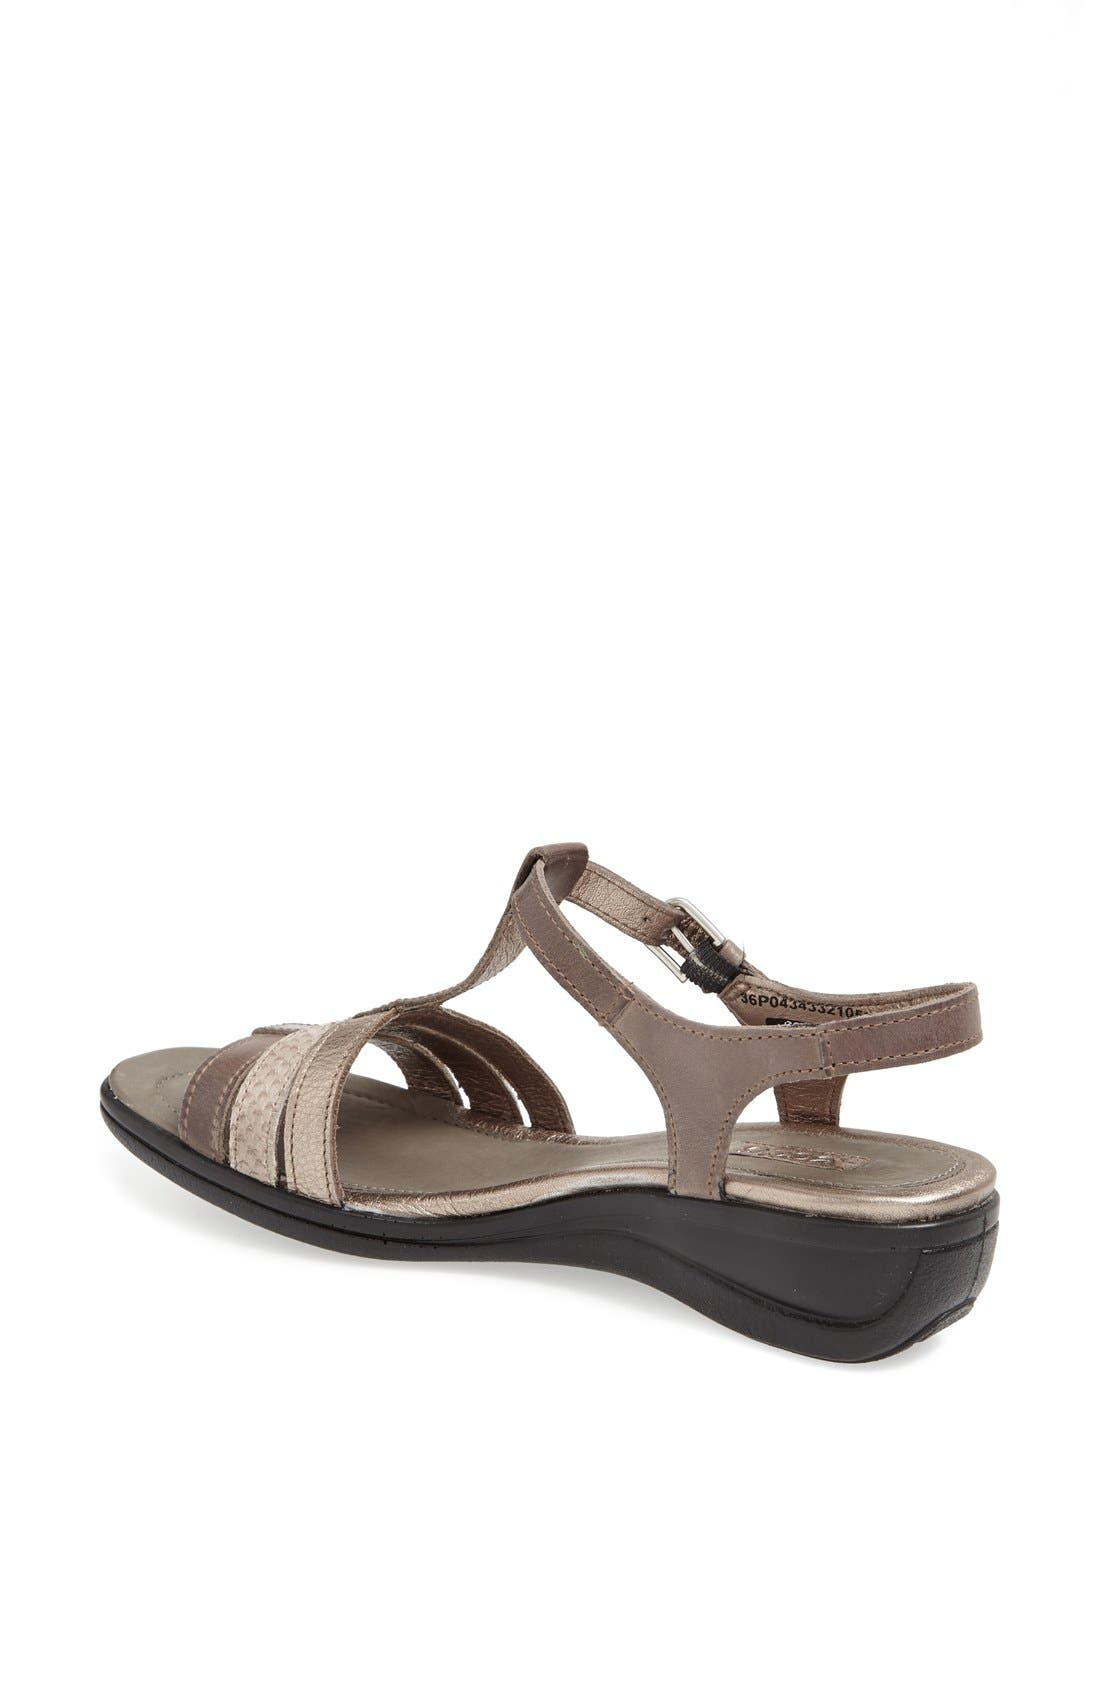 Alternate Image 2  - ECCO 'Sensata' Sandal (Regular Retail Price: $119.95)